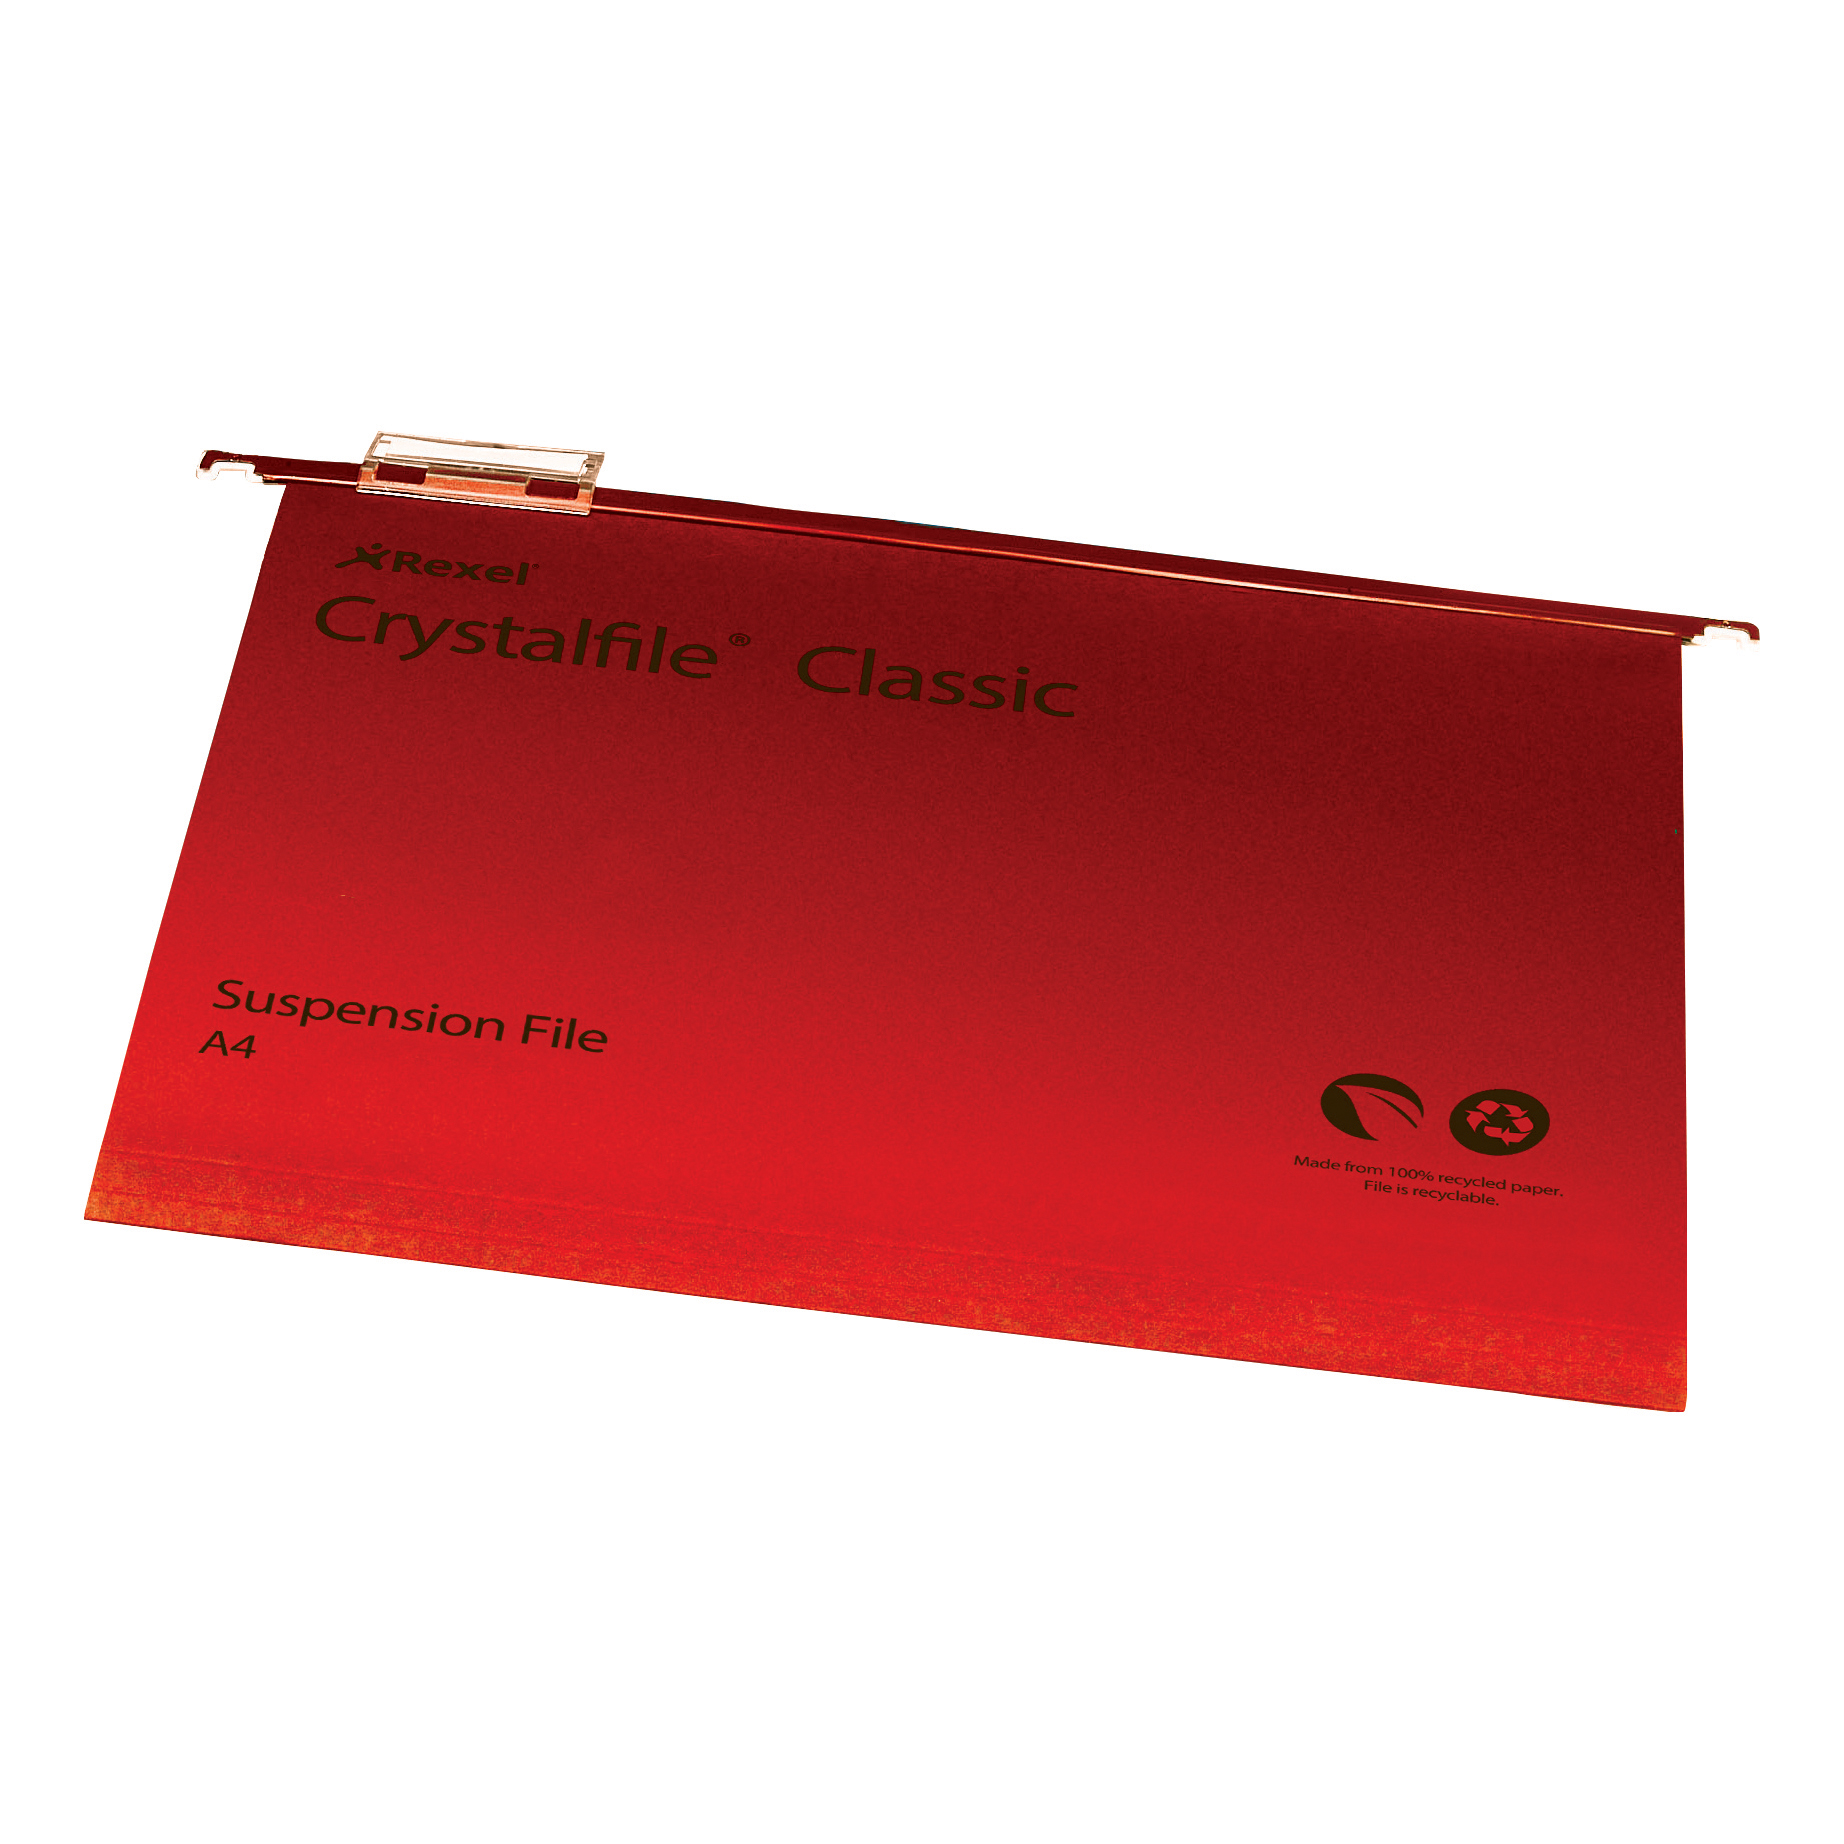 Rexel Crystalfile Classic Suspension File Manilla 15mm V-base 230gsm A4 Red Ref 78161 Pack 50